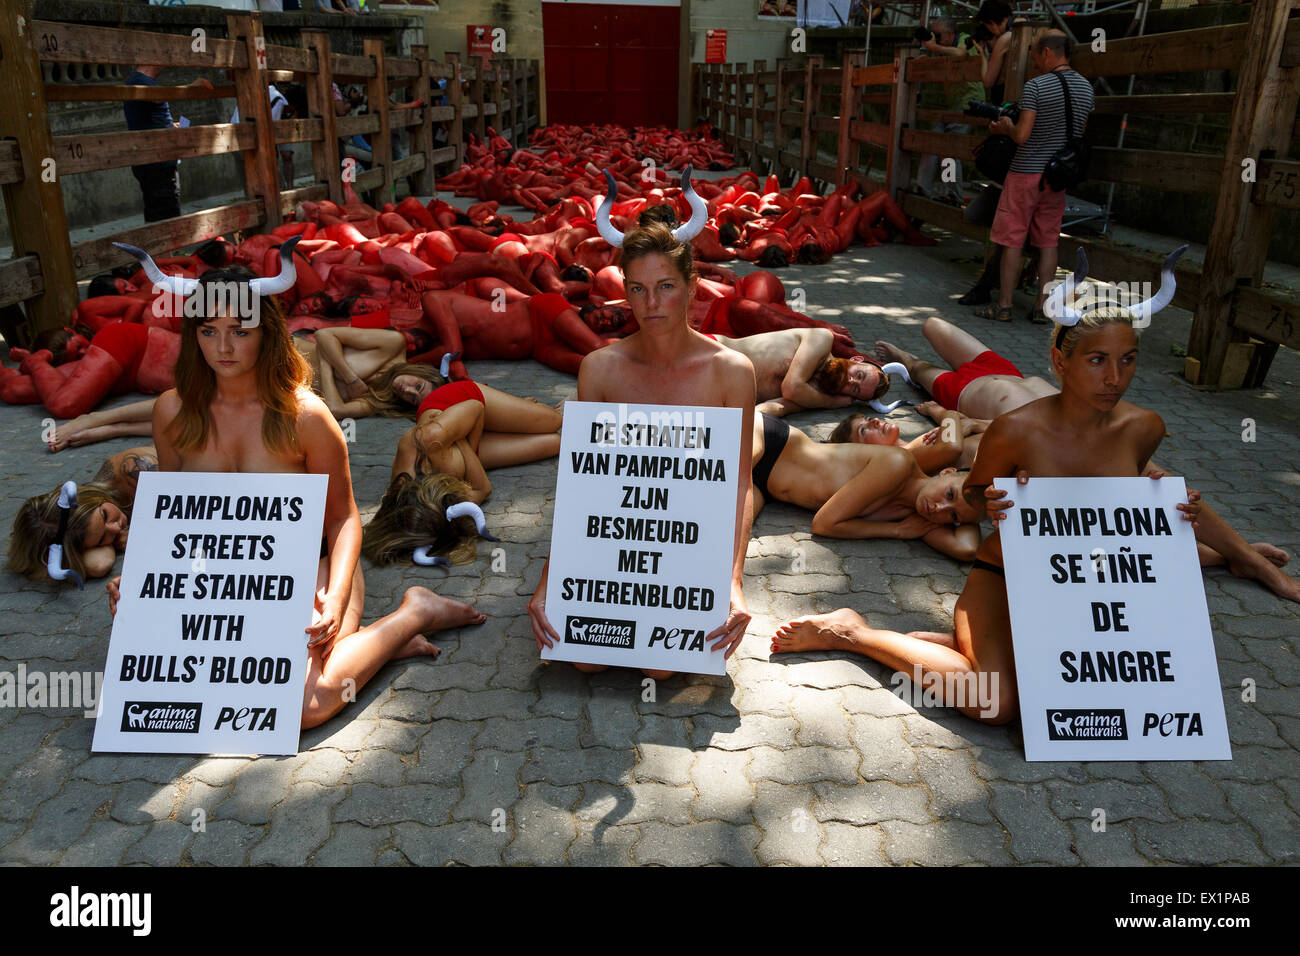 Activist PETA and AnimaNaturalis protest in Pamplona. 4th of July. 2015. Before San Fermin festival. Spain. Europe Stock Photo